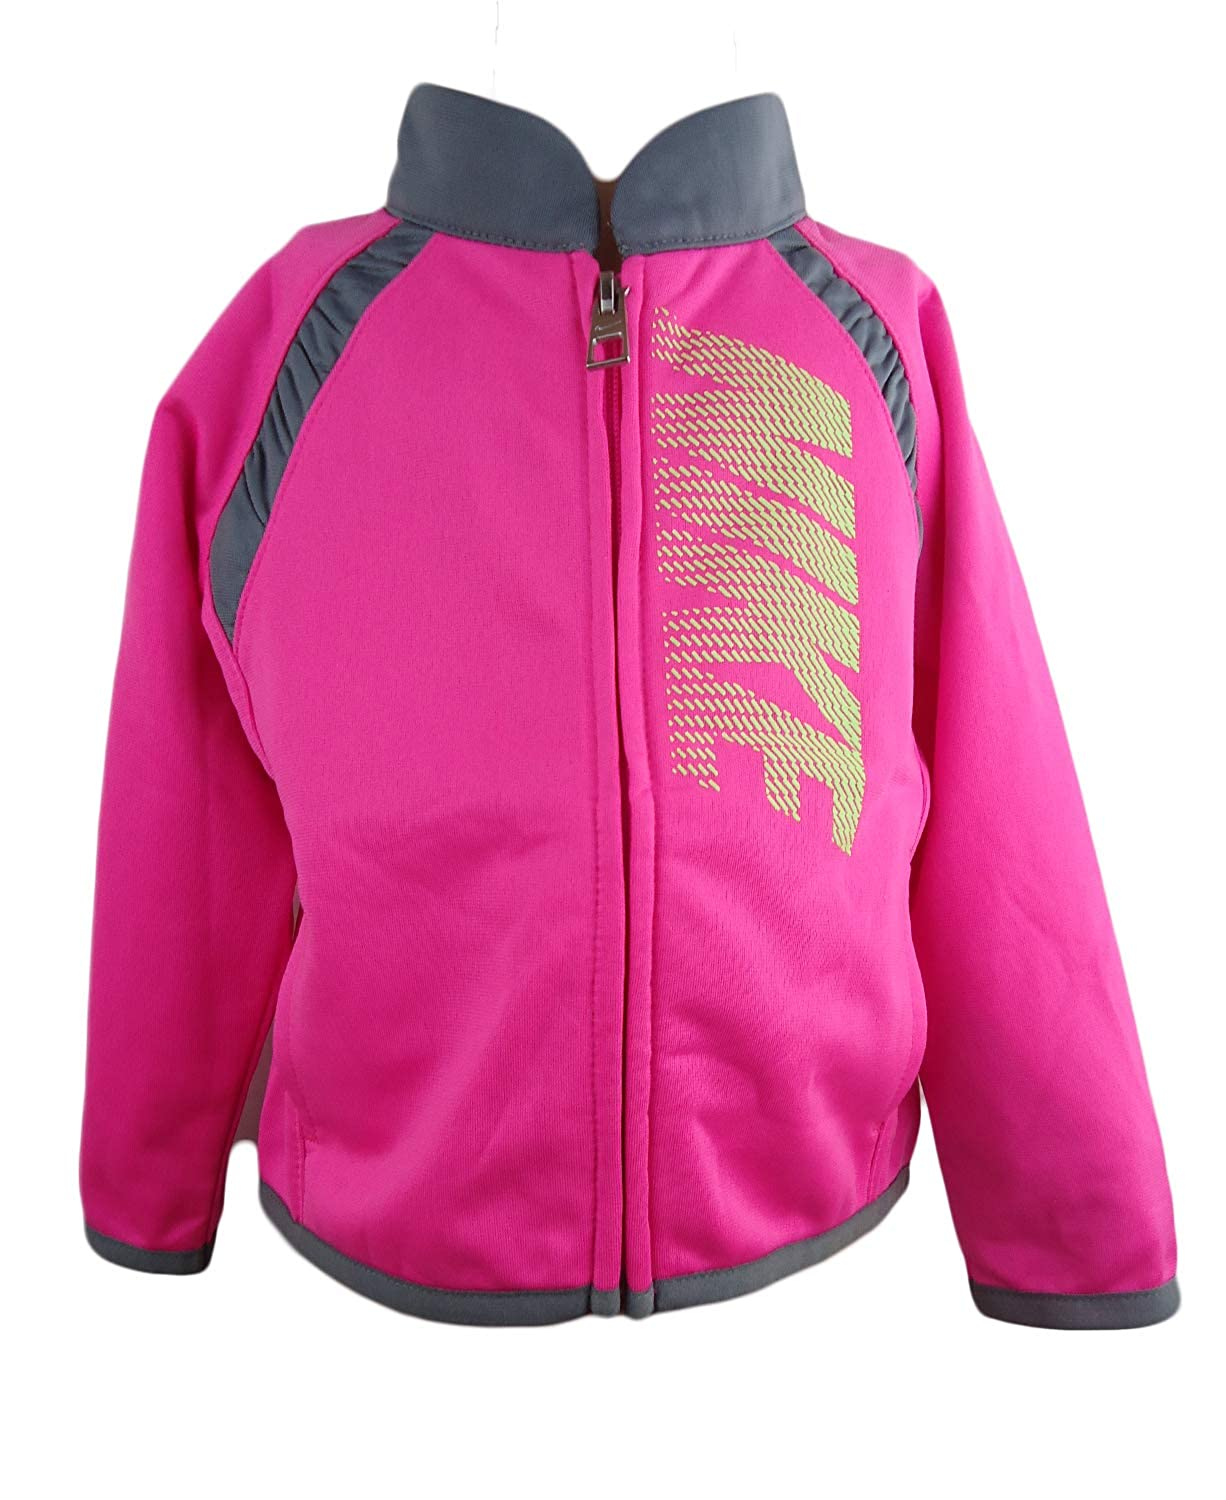 NIKE Active Girls Long Sleeve Jacket Top